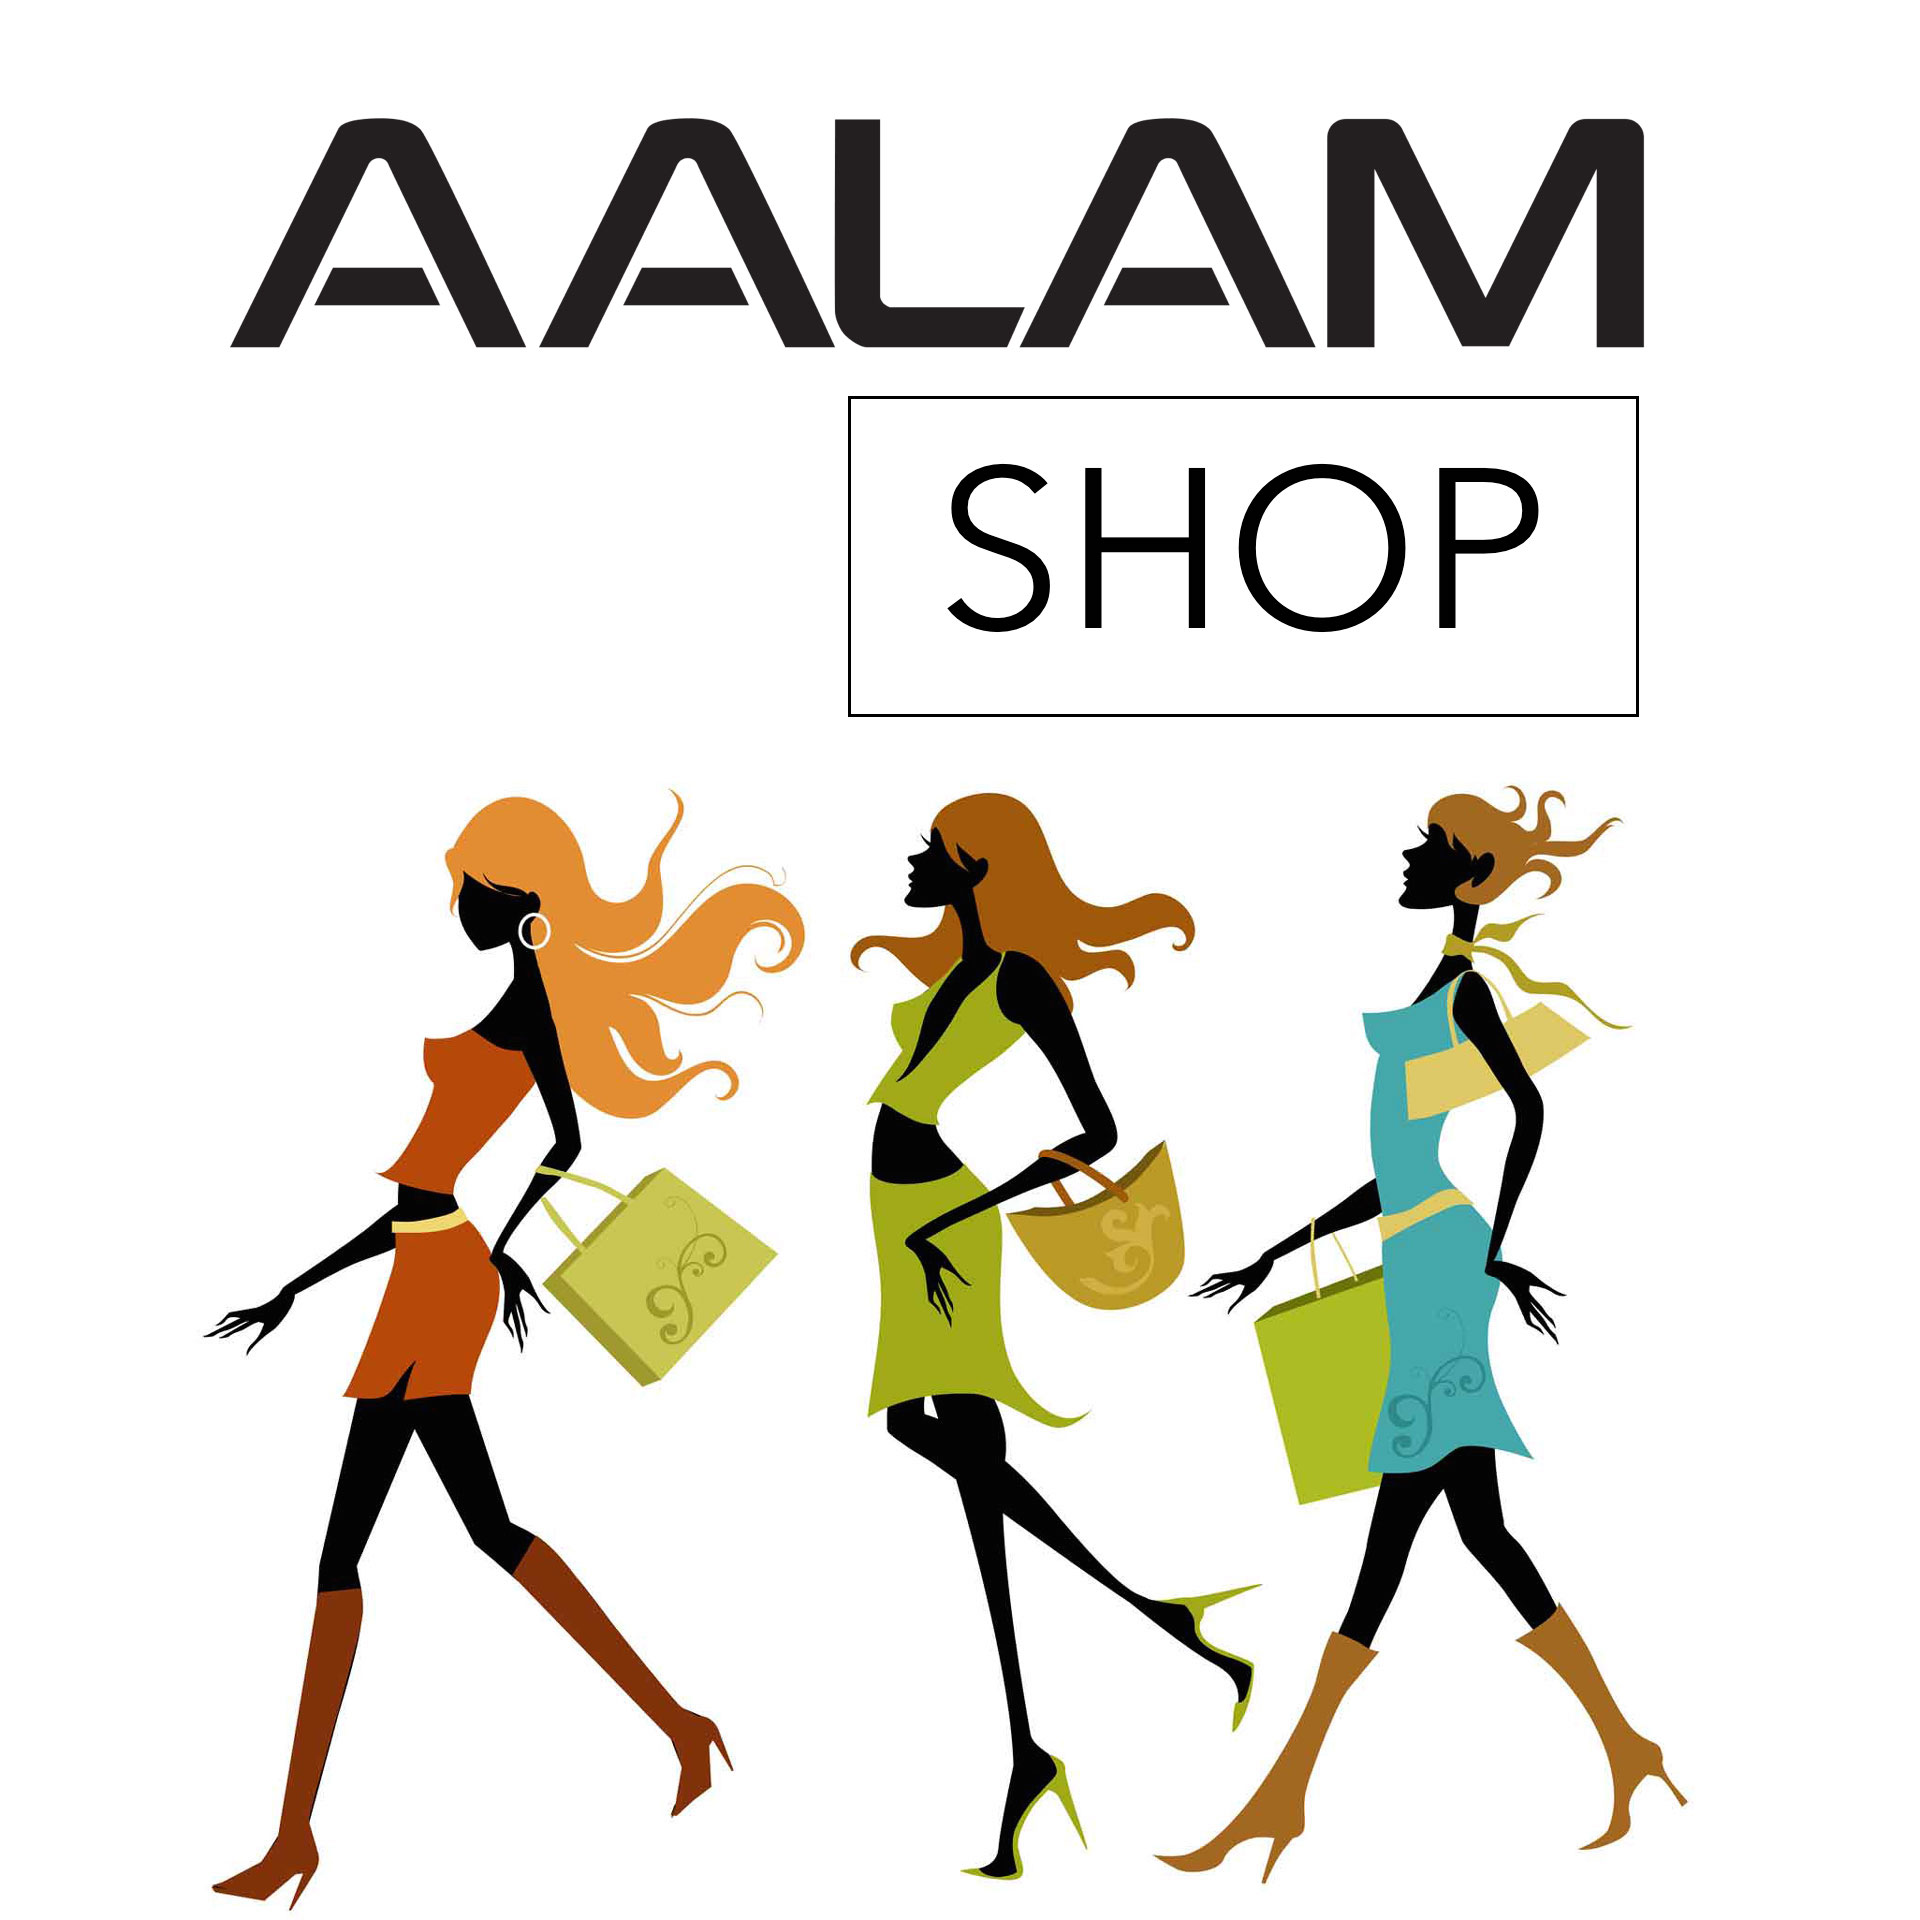 Aalam shop online aalam the salon for Aalam the salon reviews